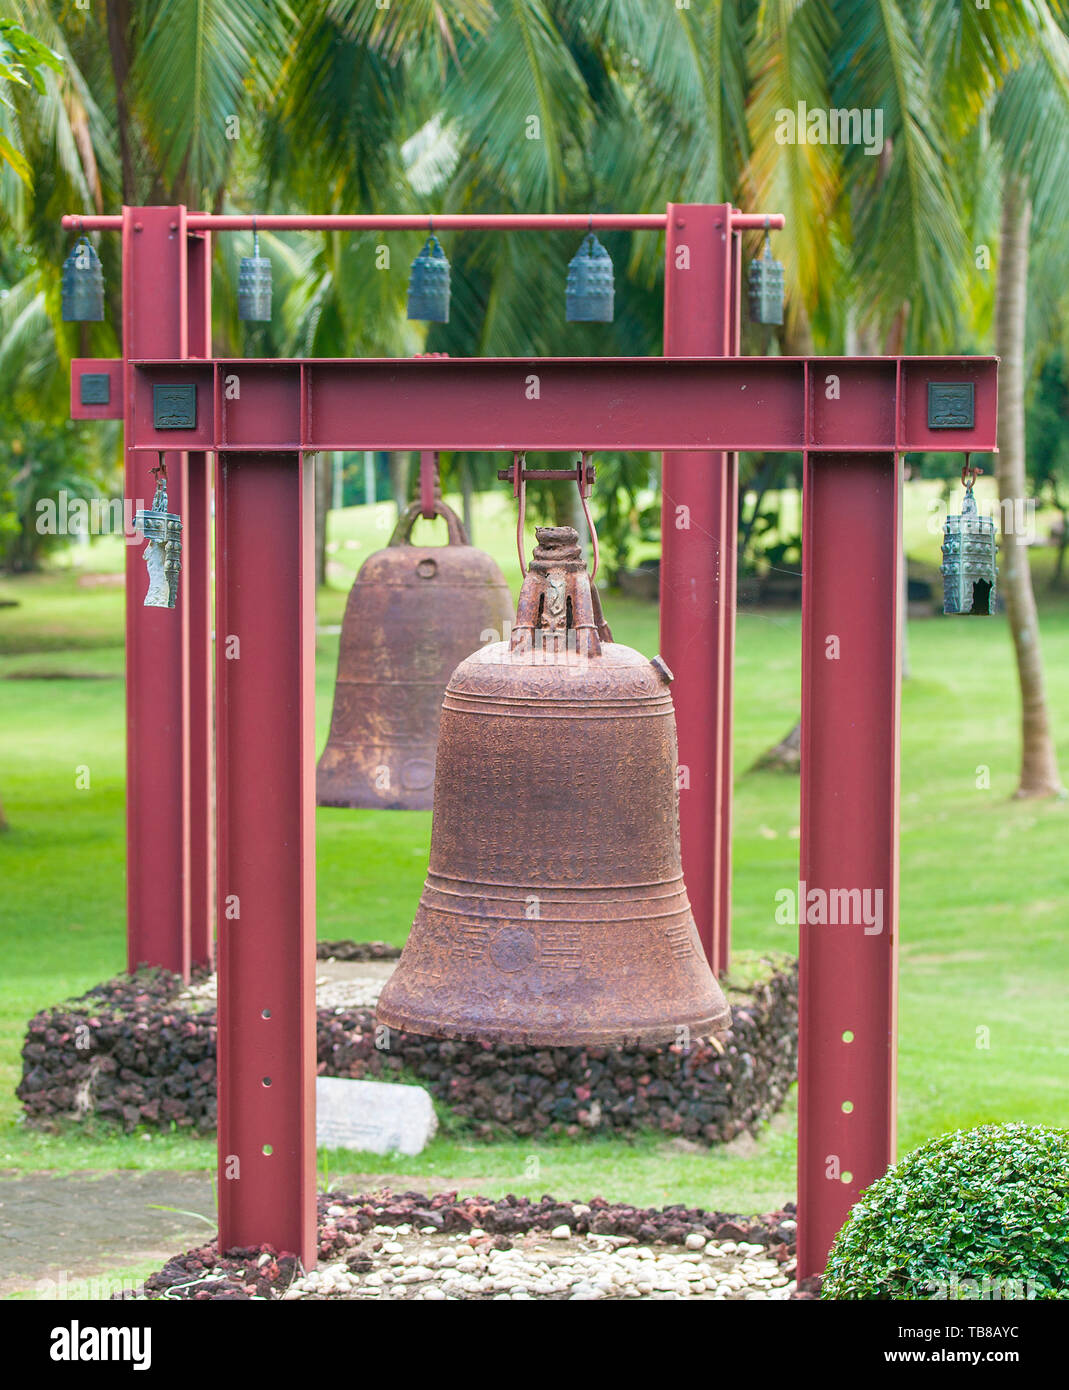 Square Bells in the center of Buddhism Nanshan on the island of Hainan in China. Stock Photo